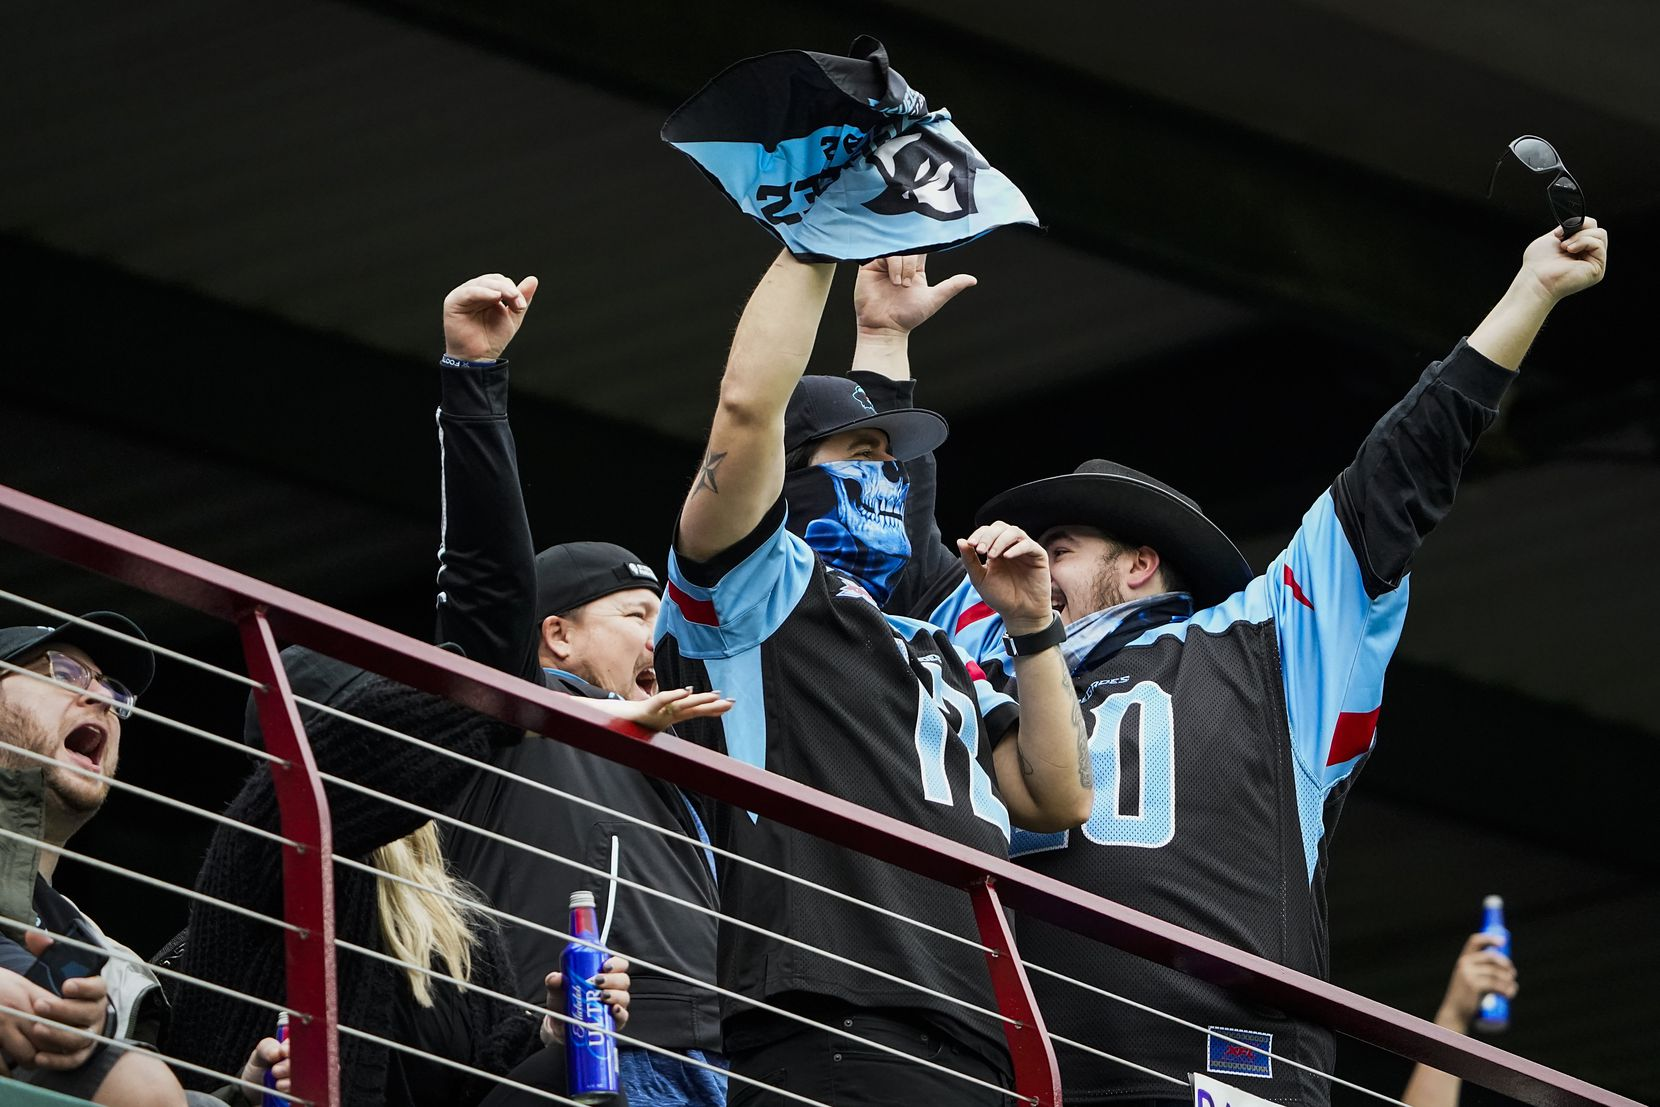 Dallas Renegades fans cheer after their team recovered a St. Louis Battlehawks fumble during the first half of an XFL football game at Globe Life Park on Sunday, Feb. 9, 2020, in Arlington.